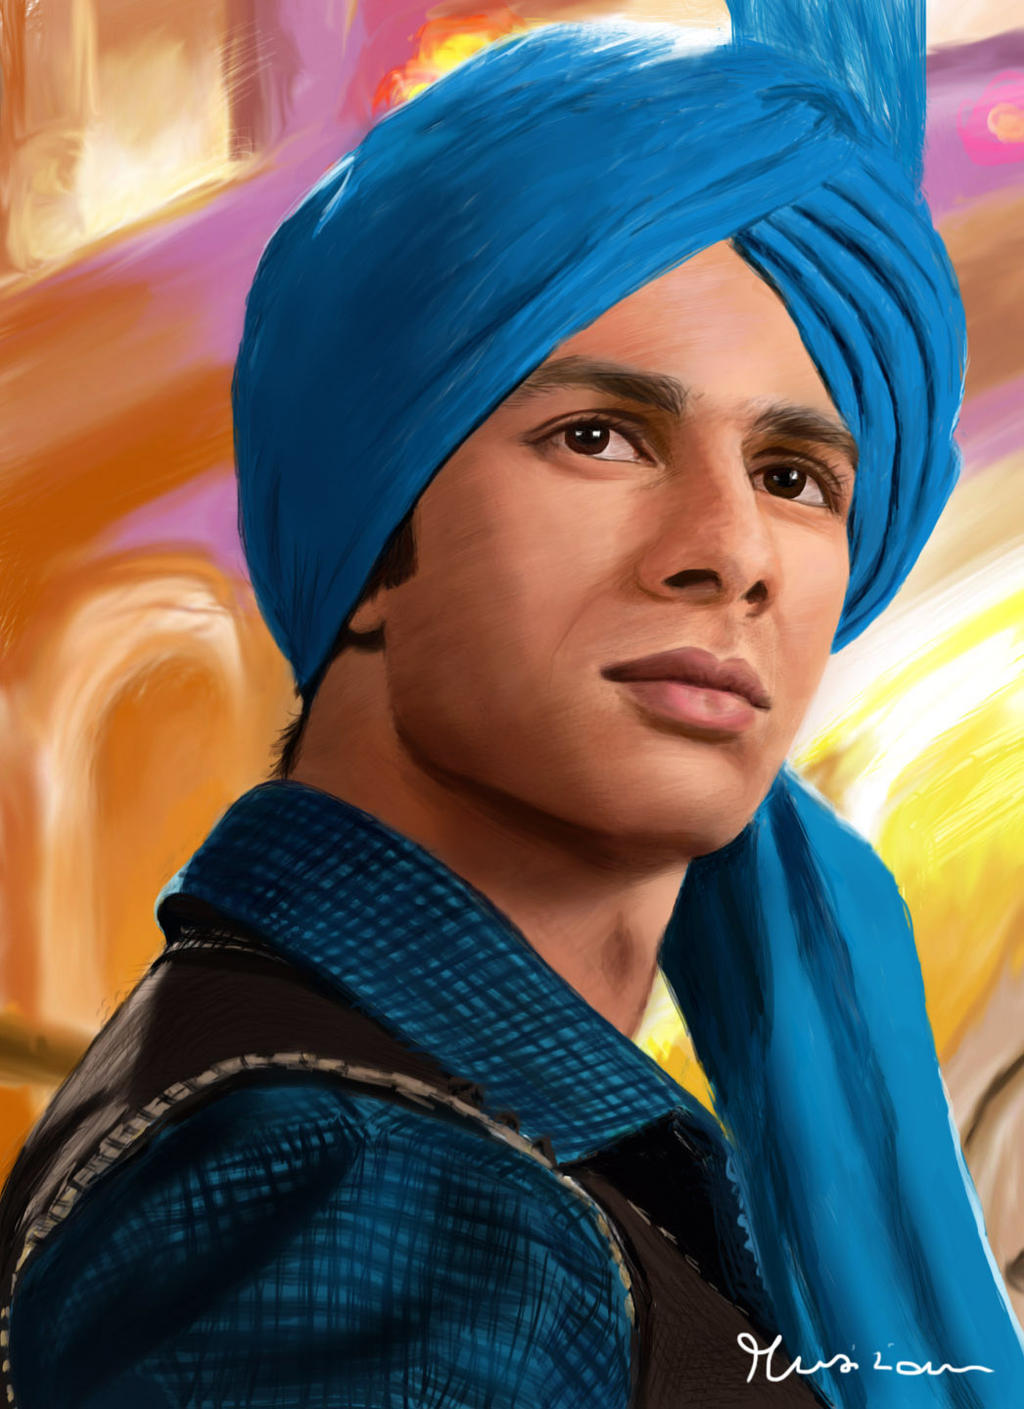 Shahid Kapoor From Mausam Movie Digital Painting By Musiriam On